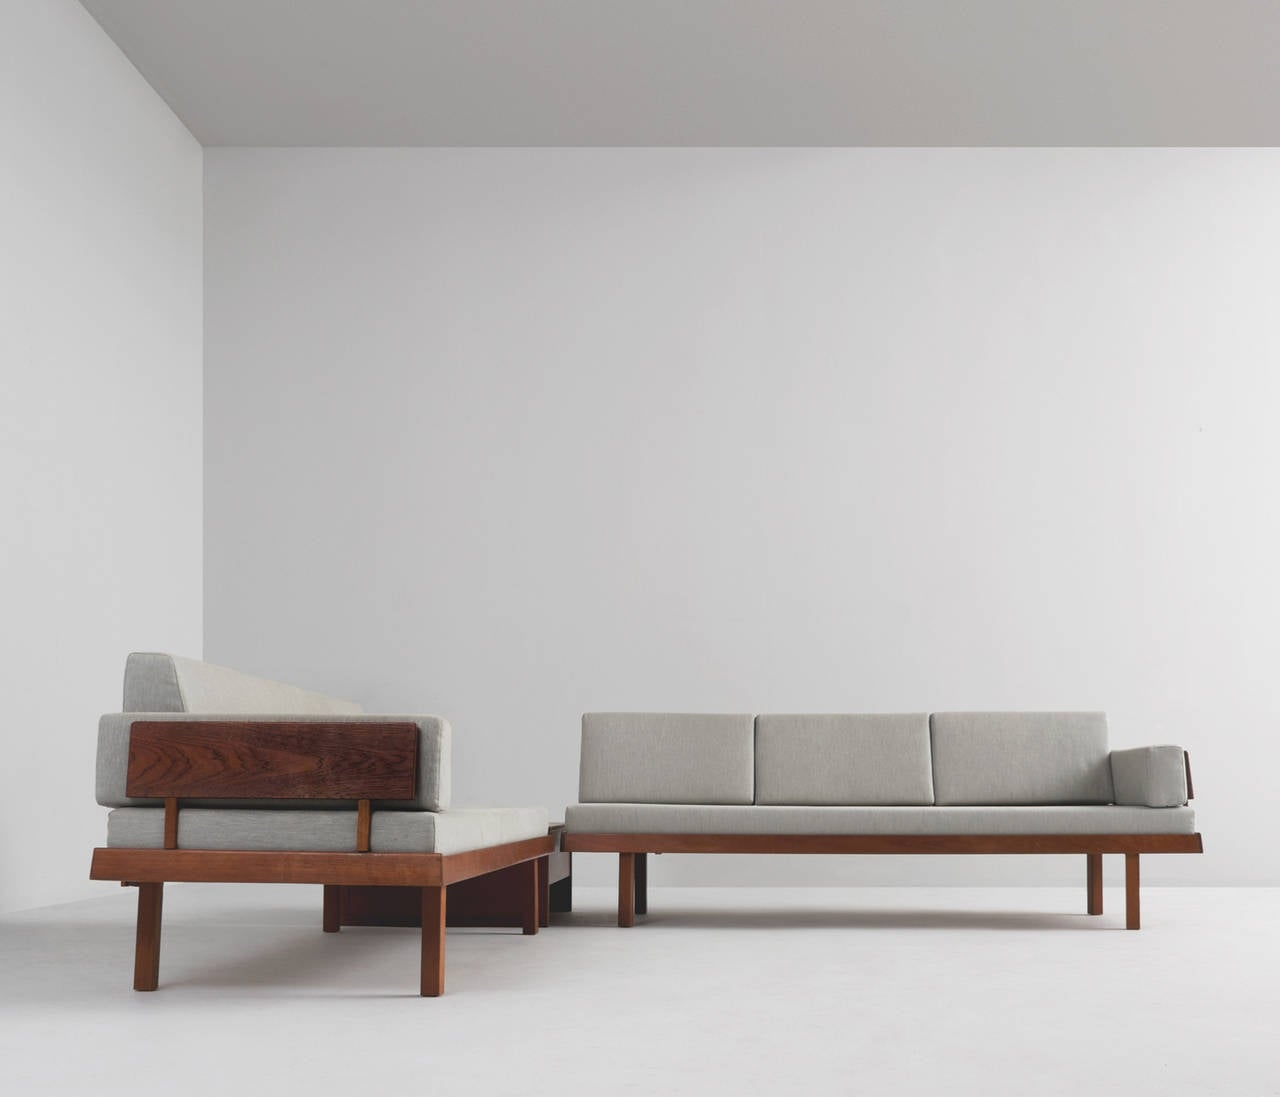 Danish living room set in teak and fabric upholstery for for Danish living room furniture